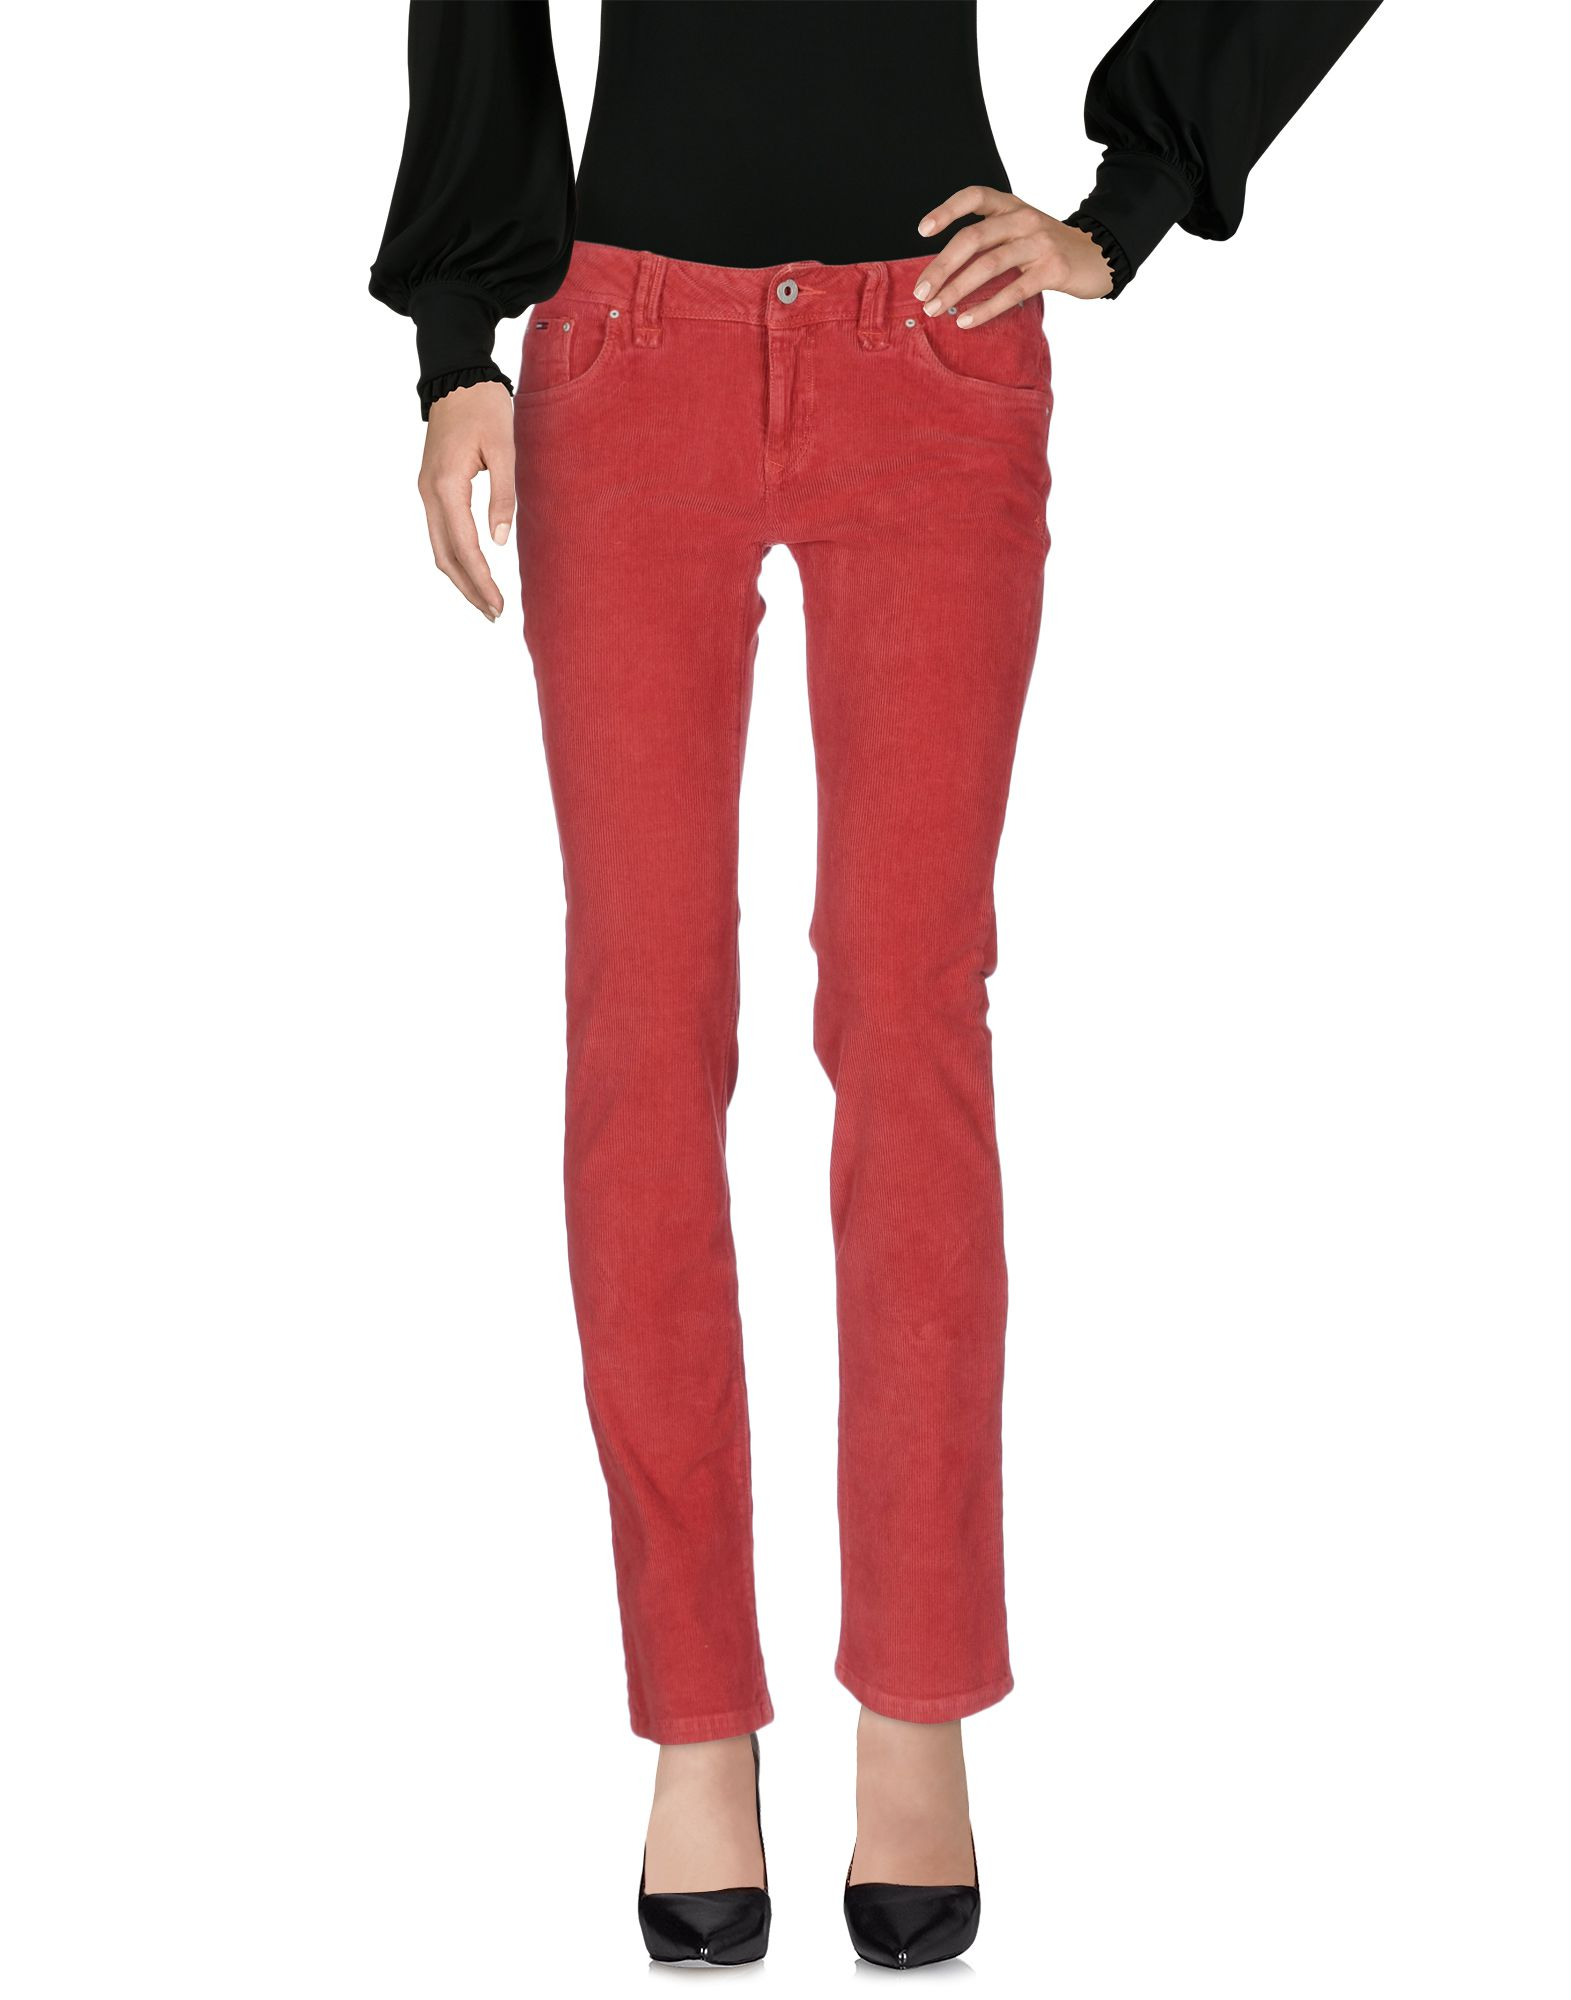 ef91f5f8 Buy tommy jeans pants for women - Best women's tommy jeans pants shop -  Cools.com